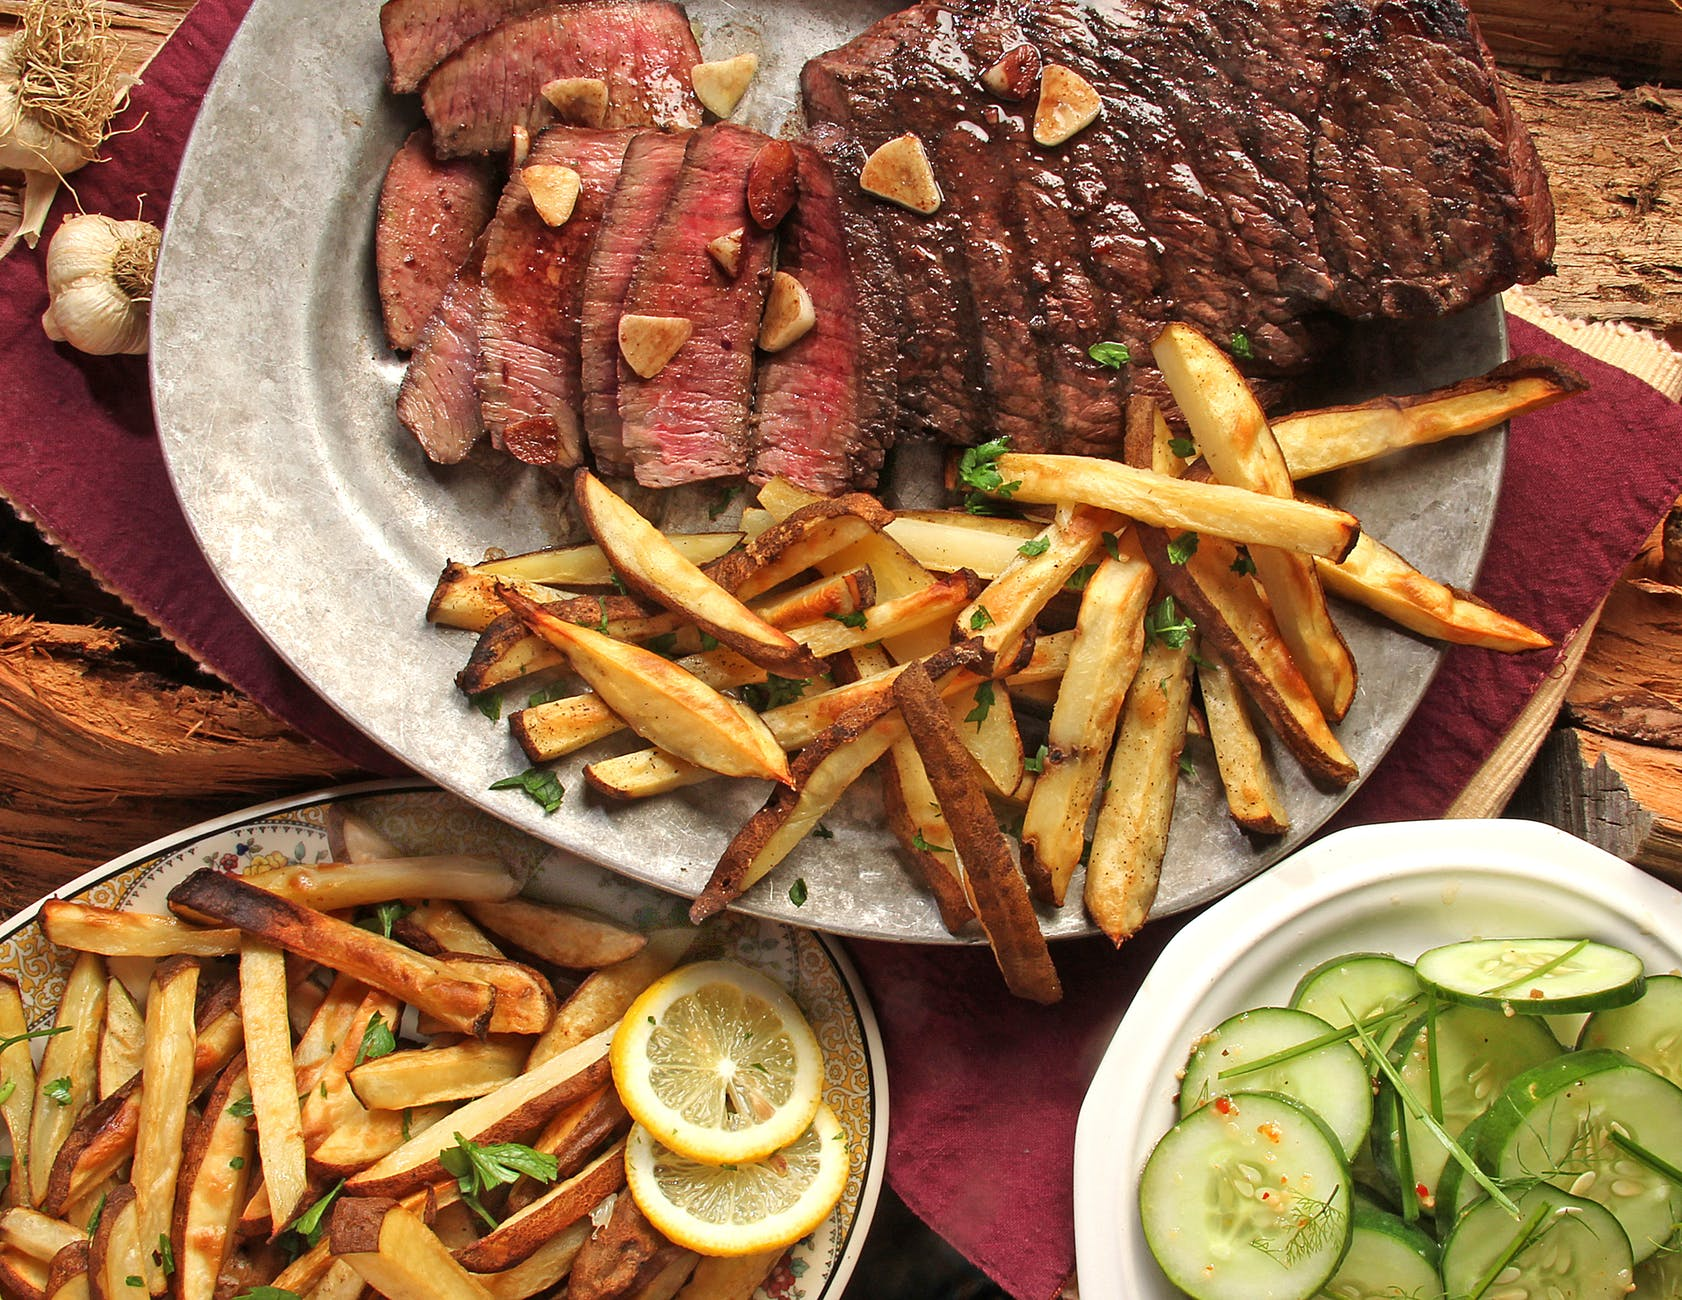 steak and french fries on gray plate